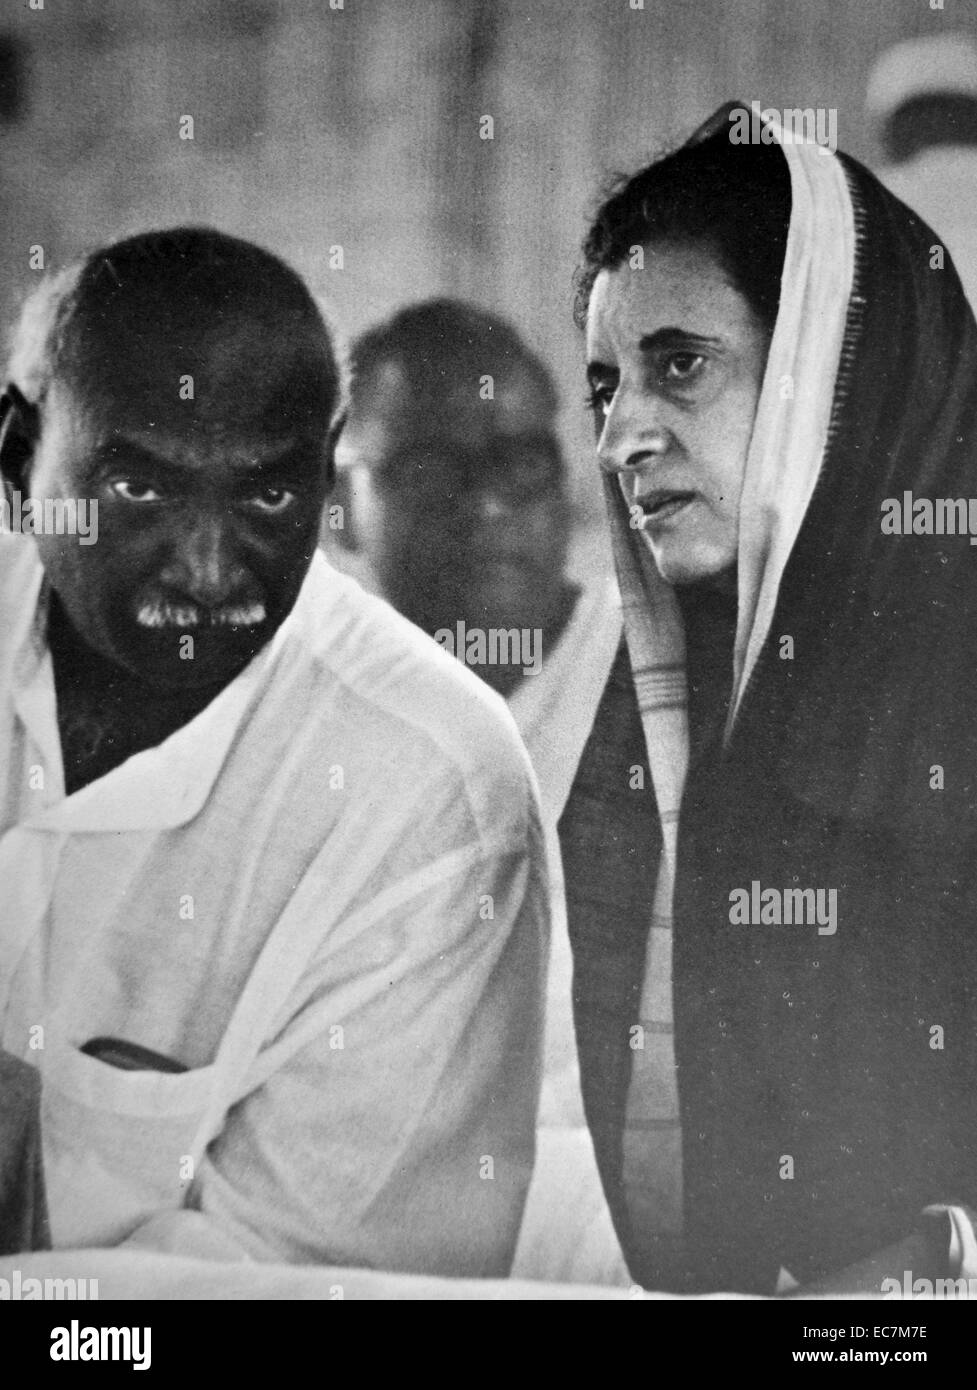 Indira Gandhi Prime Minister of India speaks with a Congress party colleague. - Stock Image